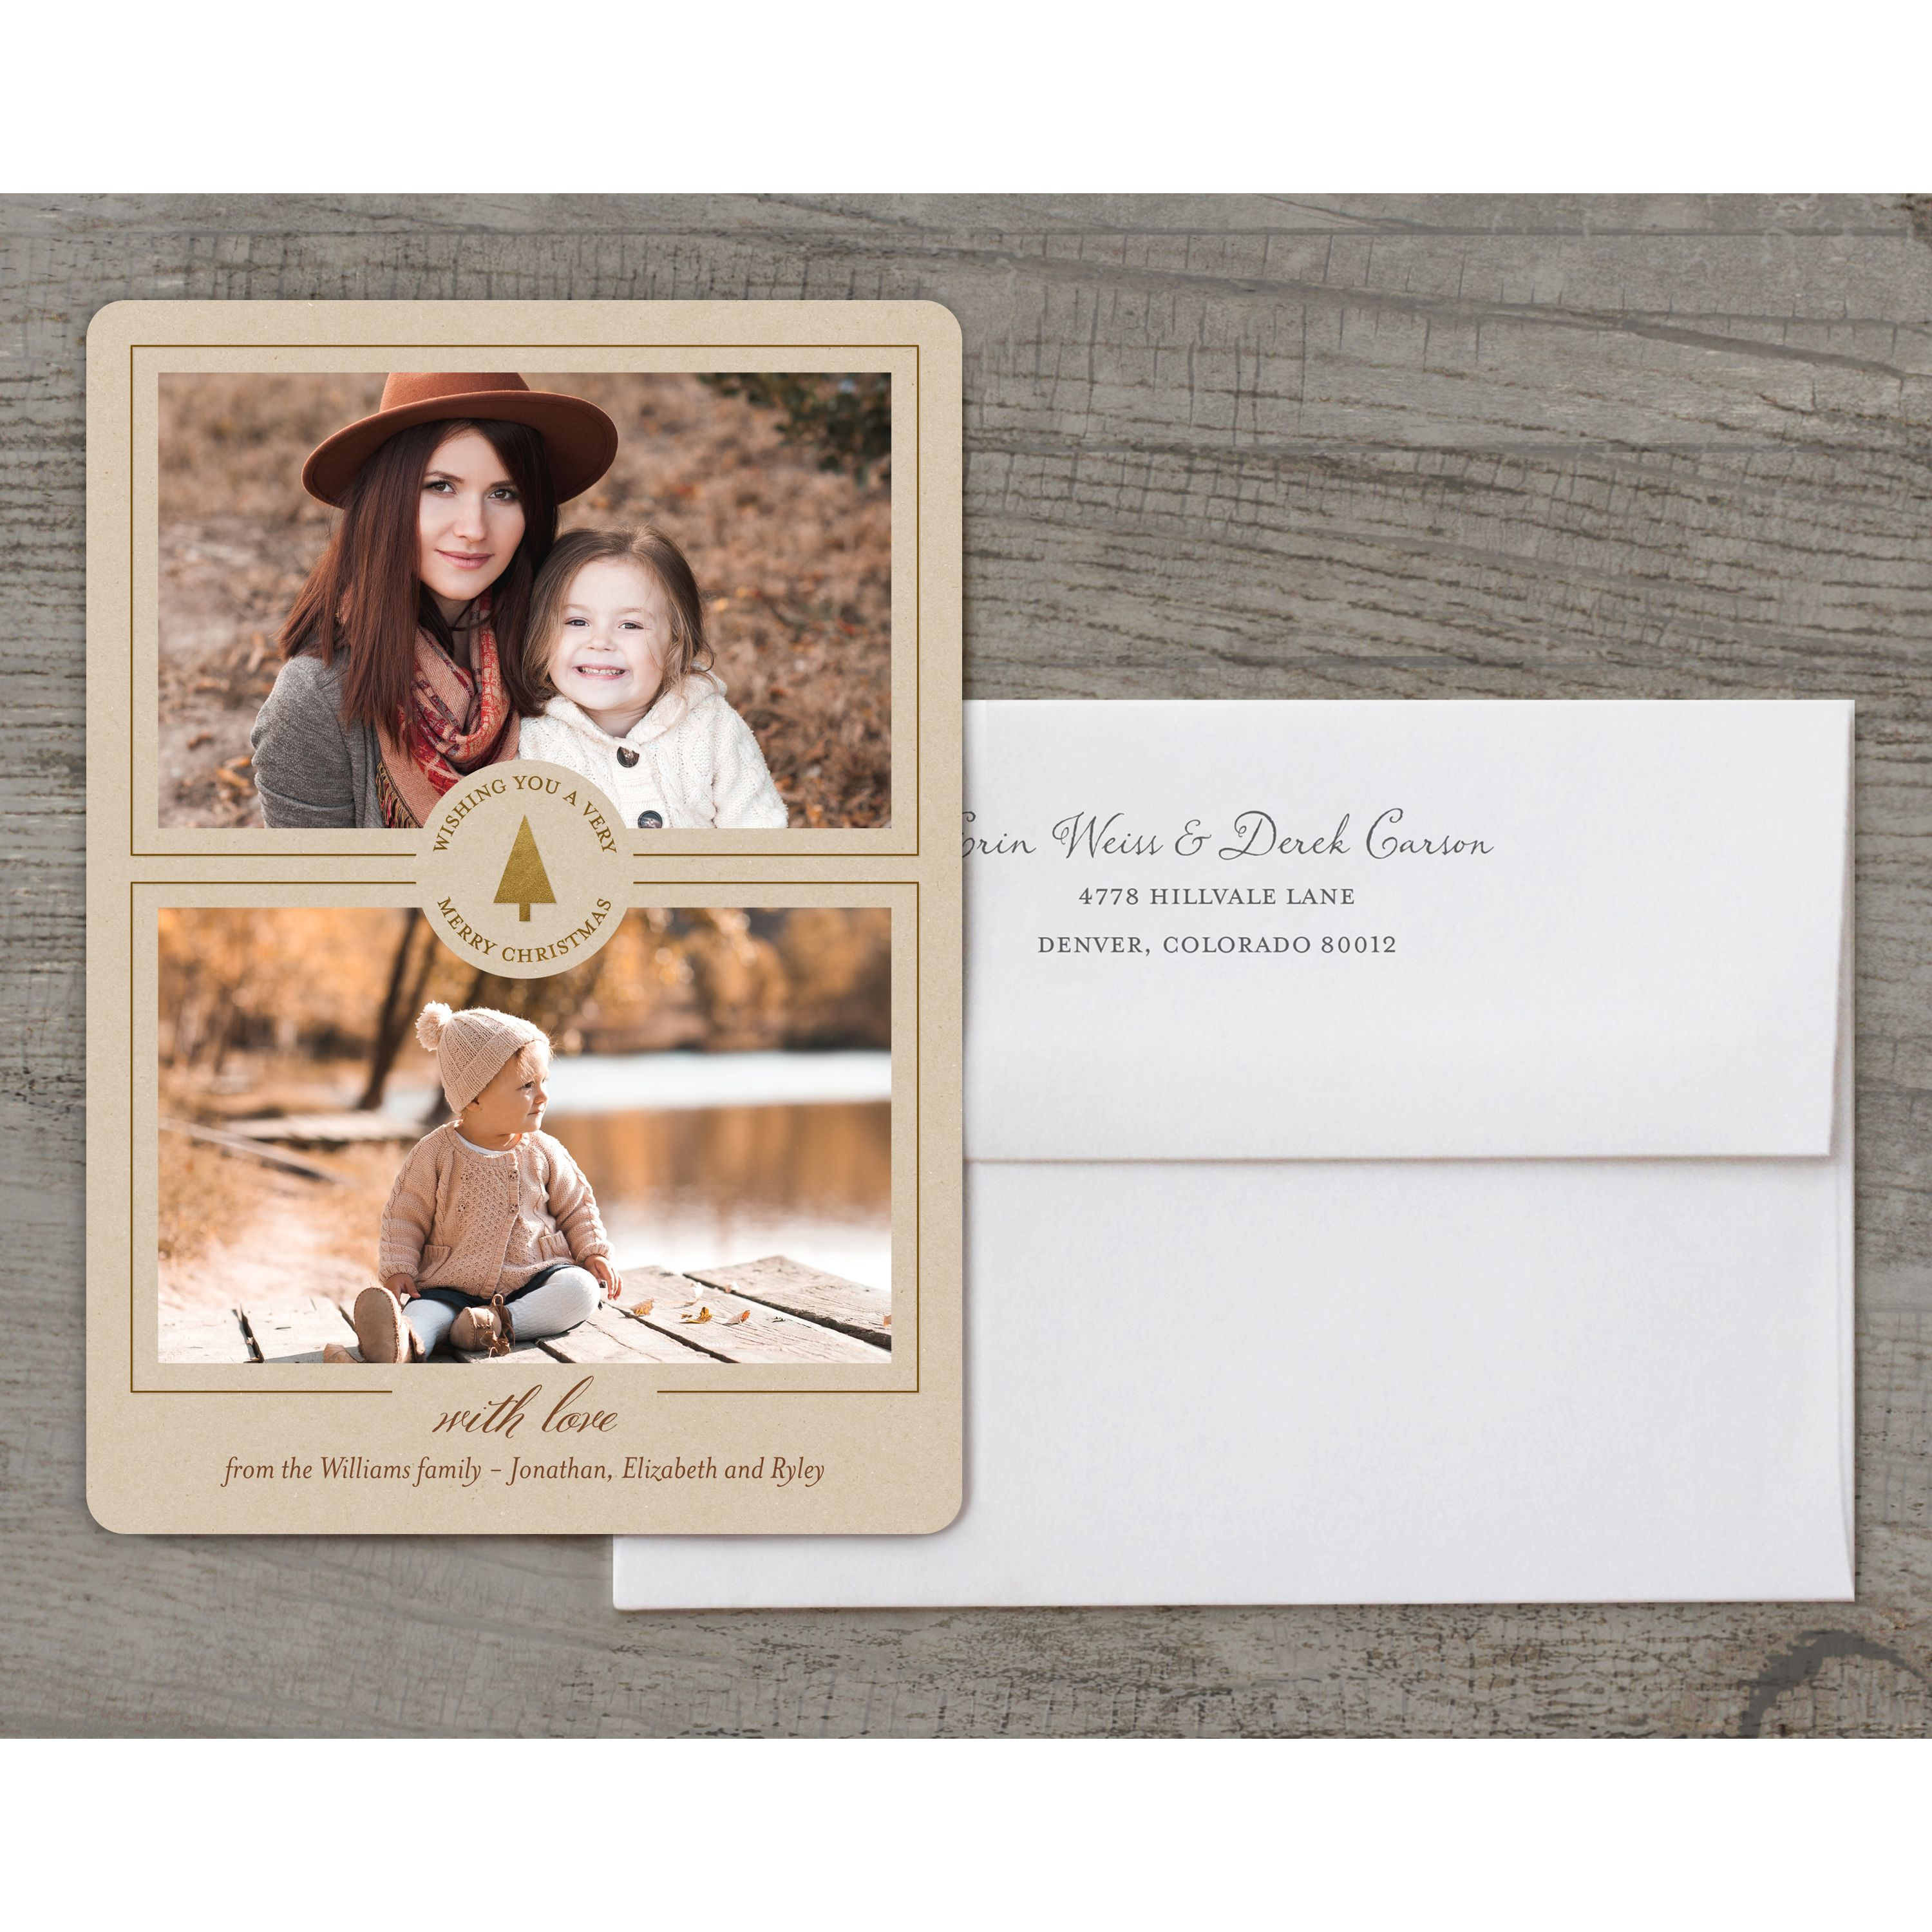 Kraft Foil - Deluxe 5x7 Personalized Holiday Christmas Card